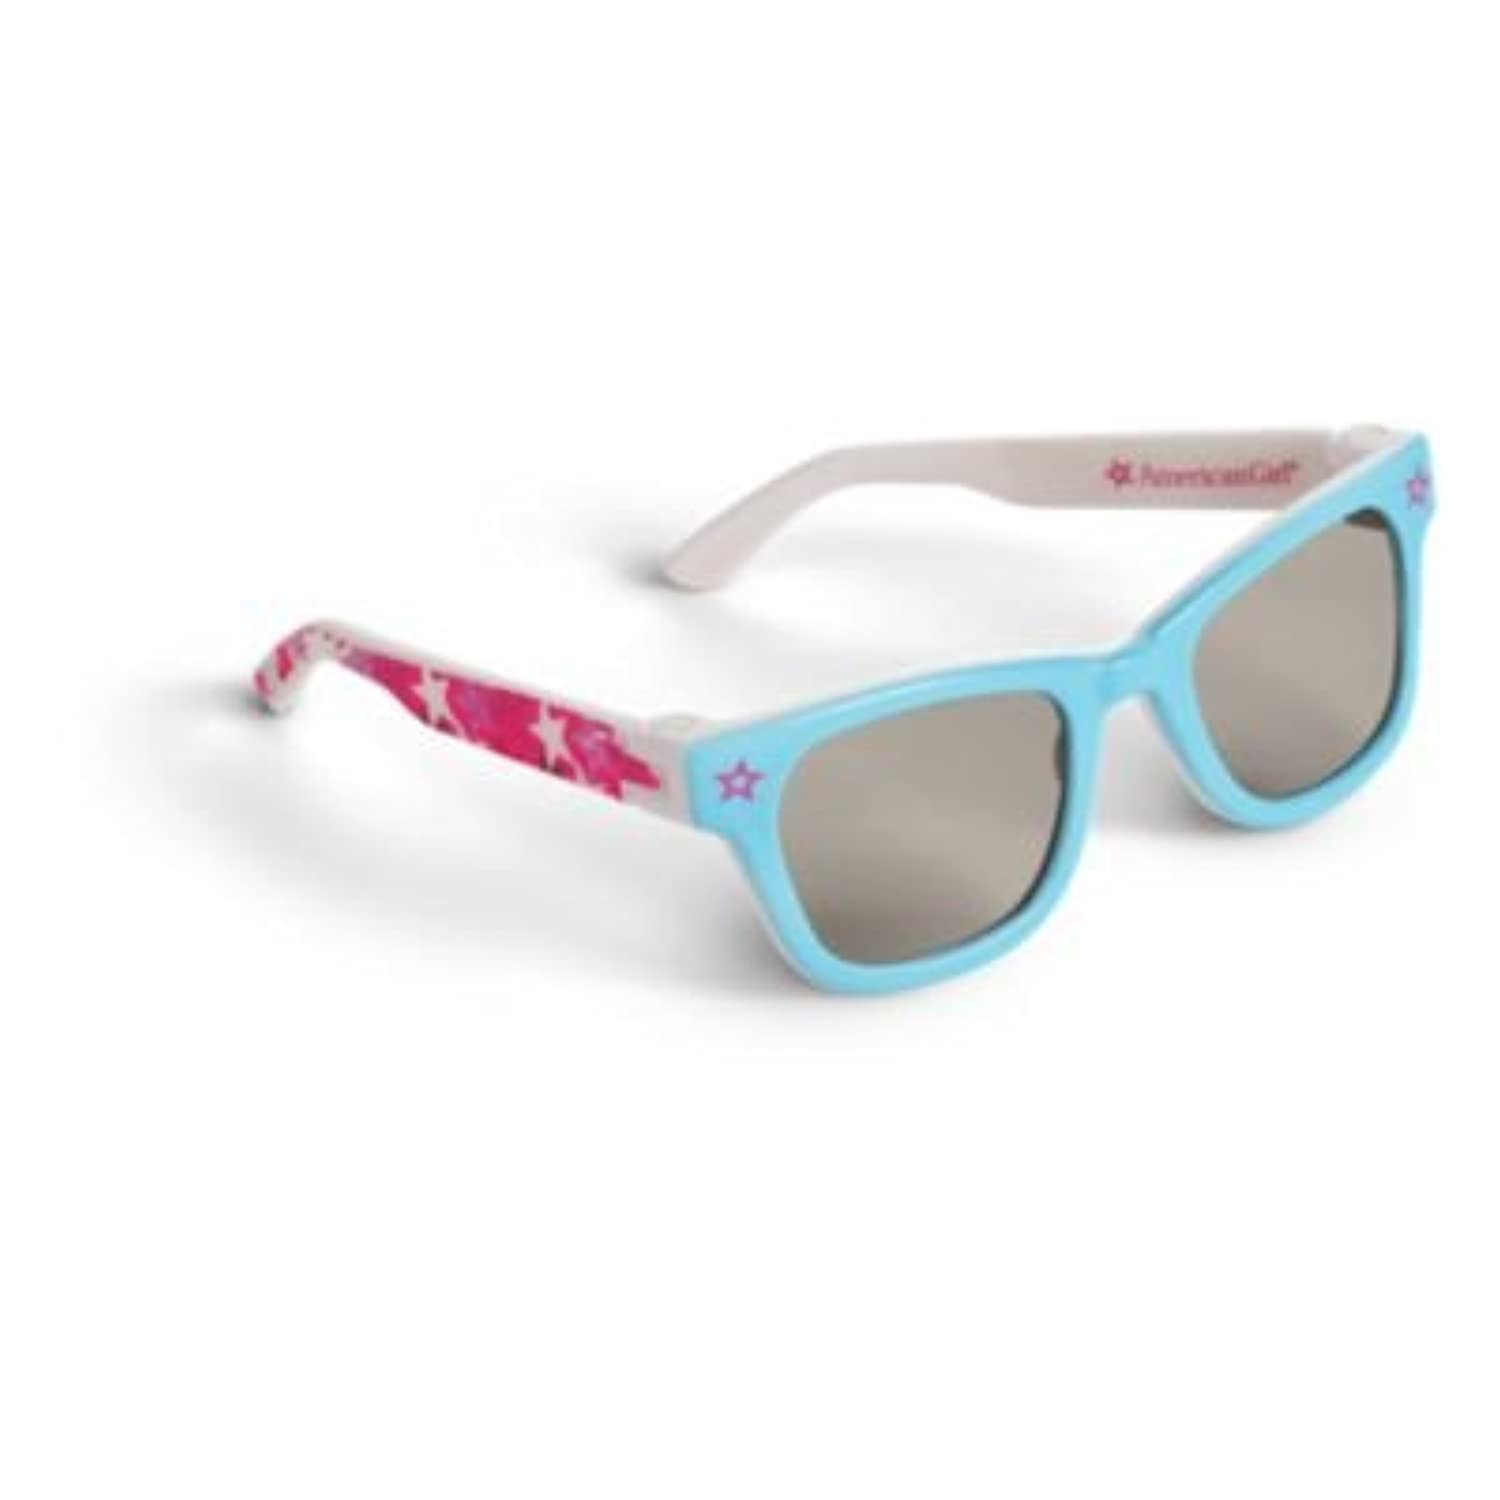 American Girl - Starry Sunglasses for 18-inch Dolls - Truly Me 2017